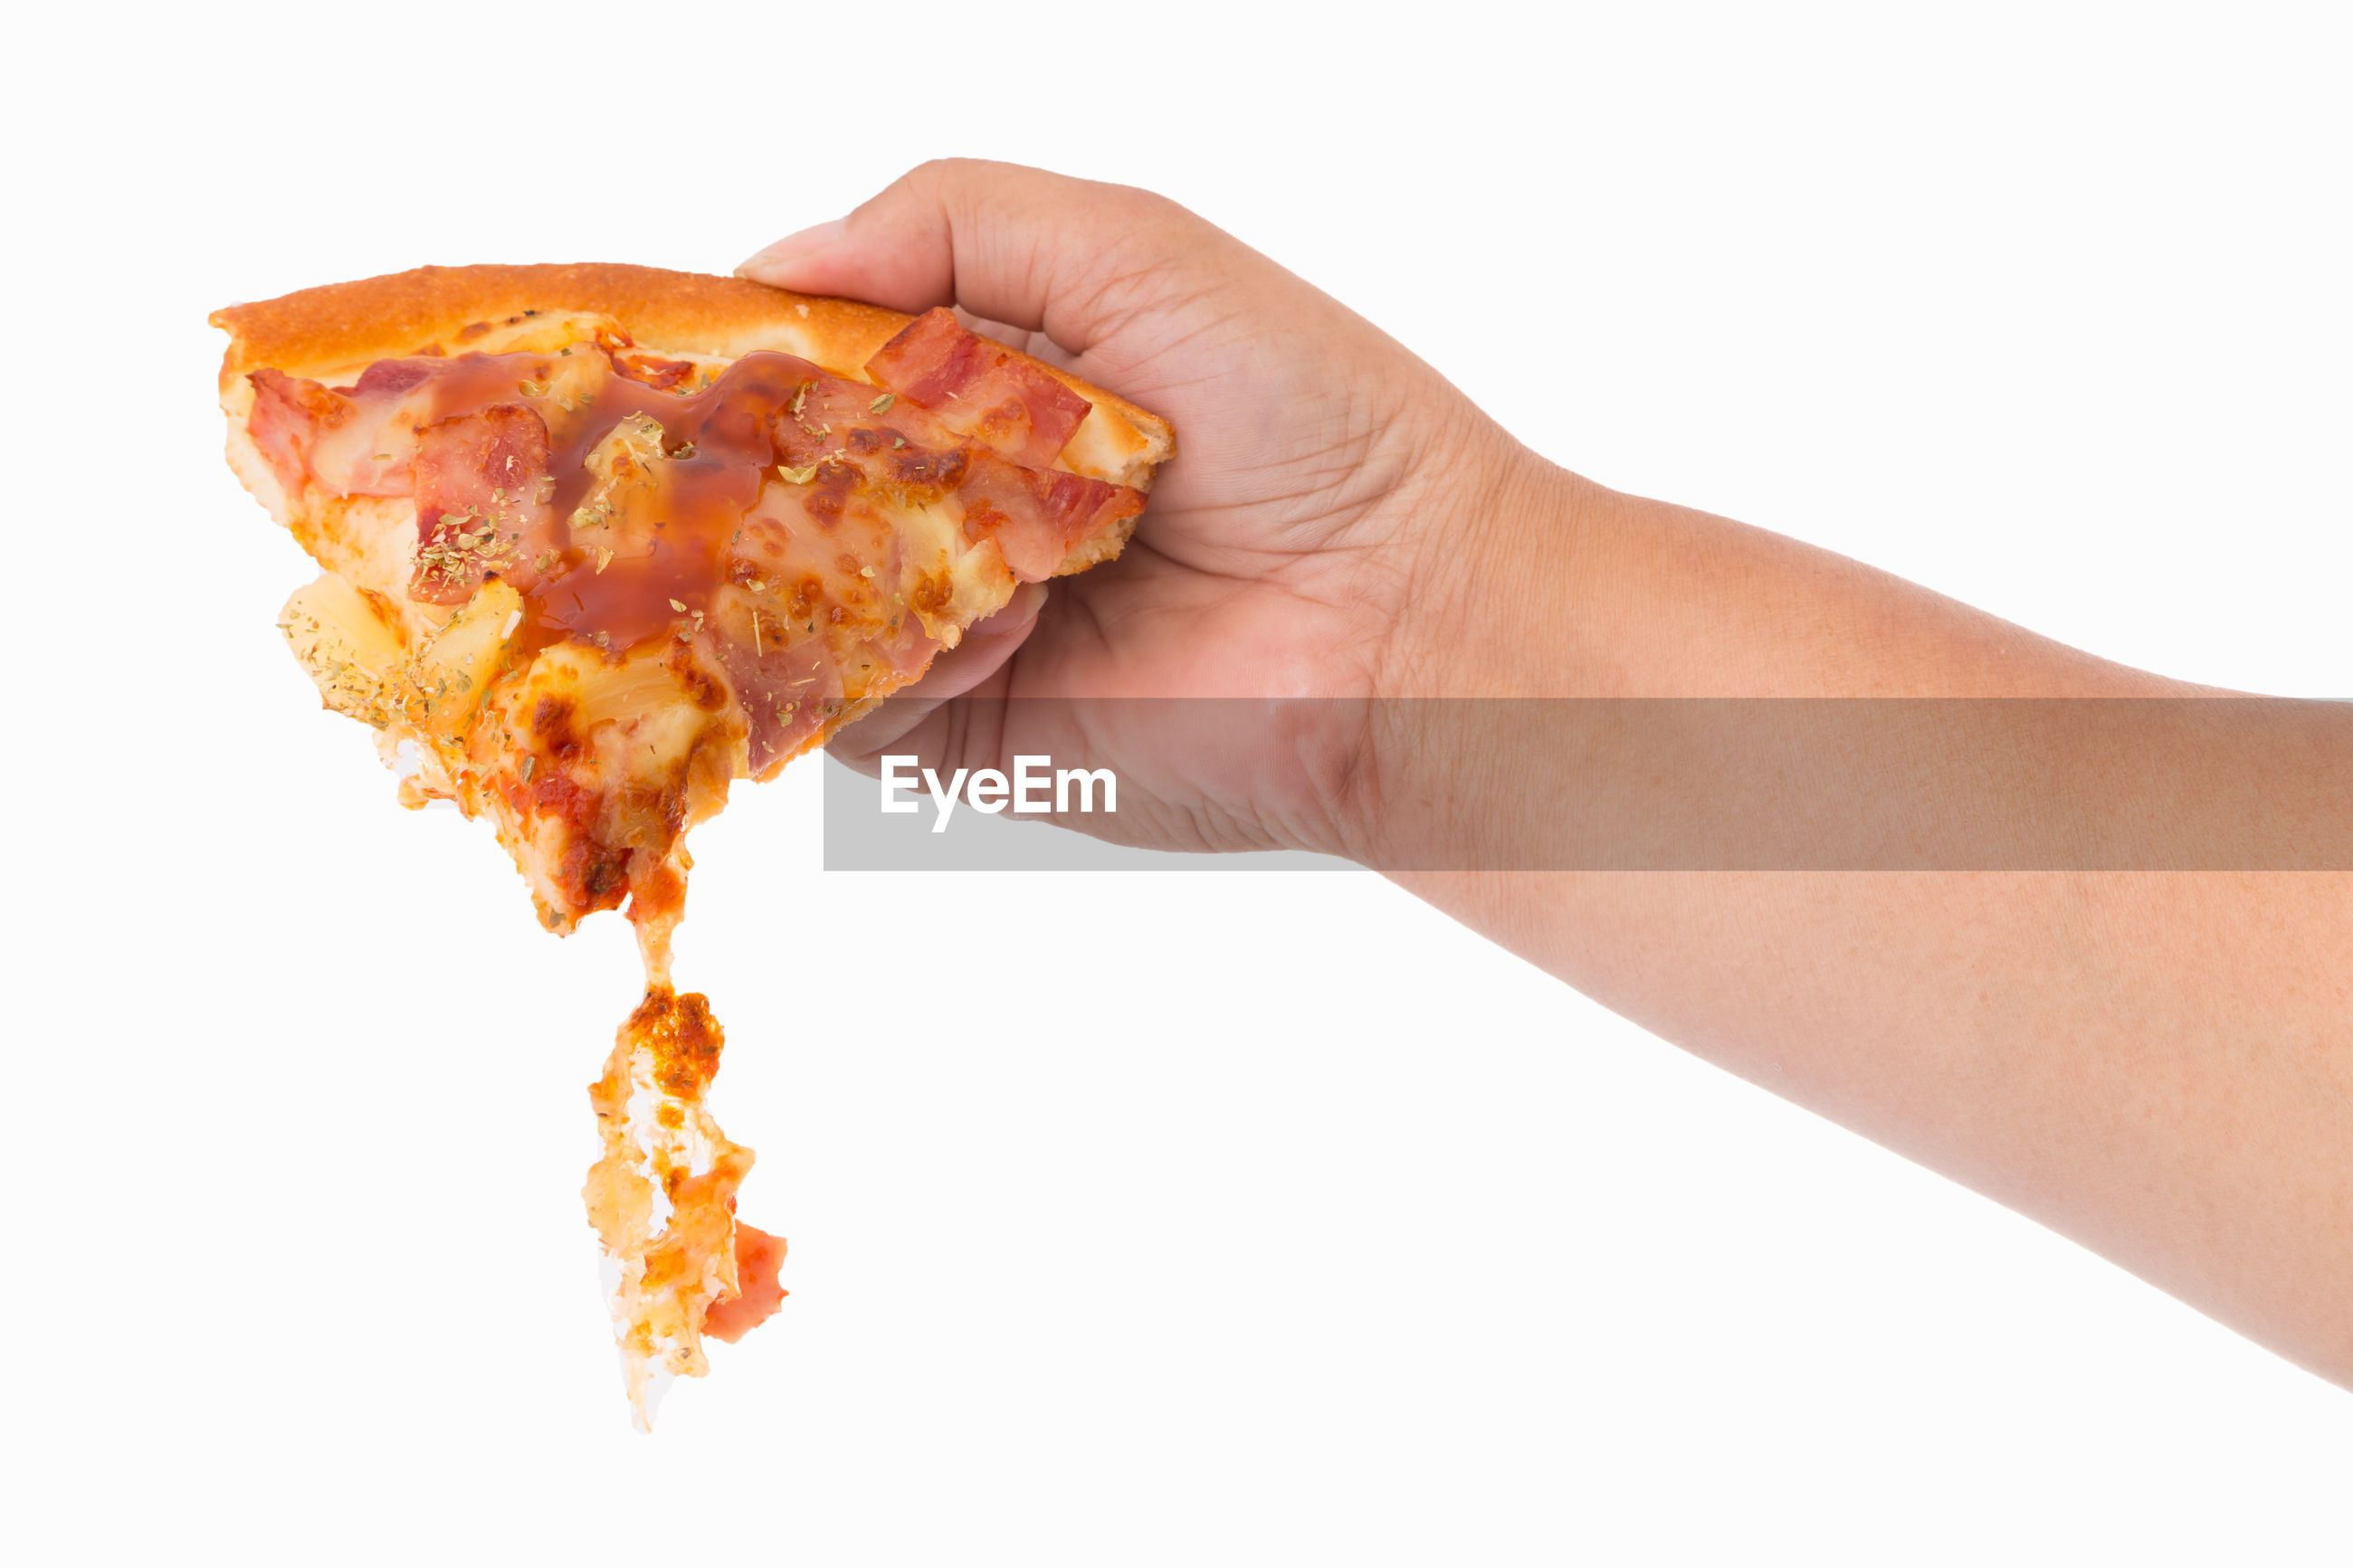 Close-up of hand holding pizza against white background